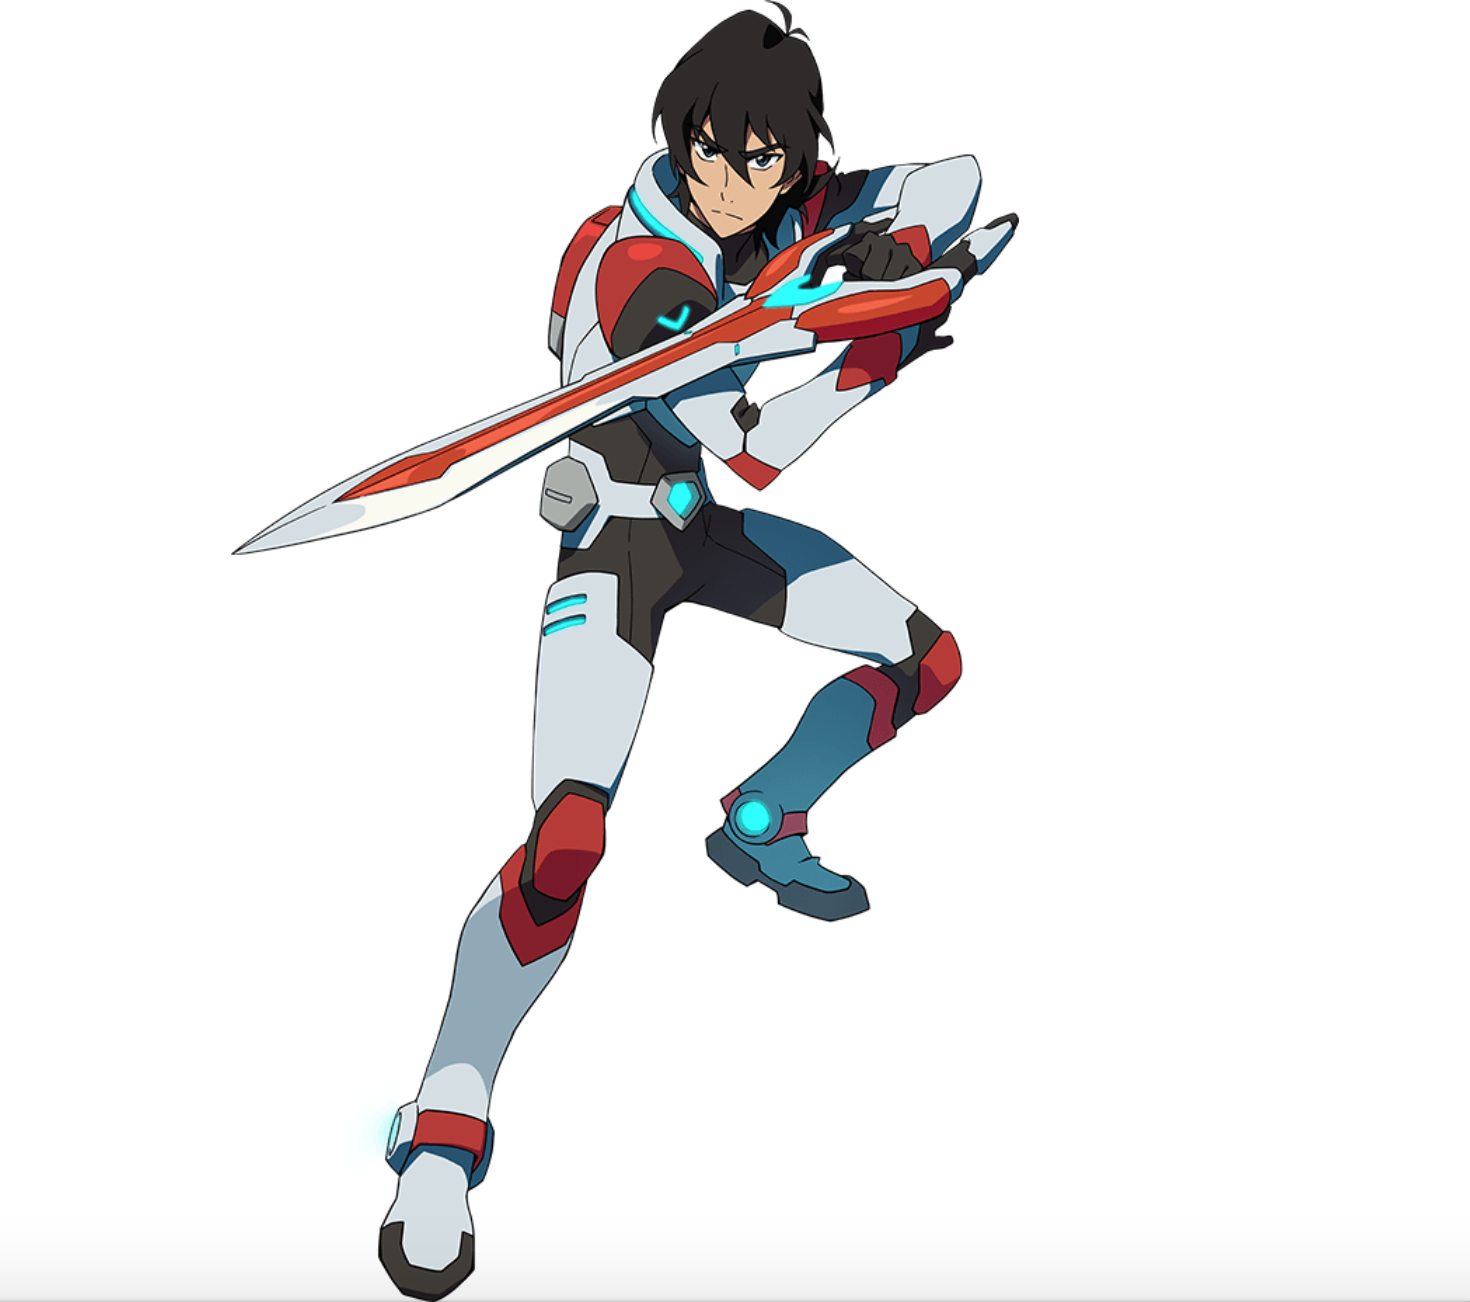 Keith the Red Paladin in action from Voltron Legendary Defender | Voltron legendary defender ...